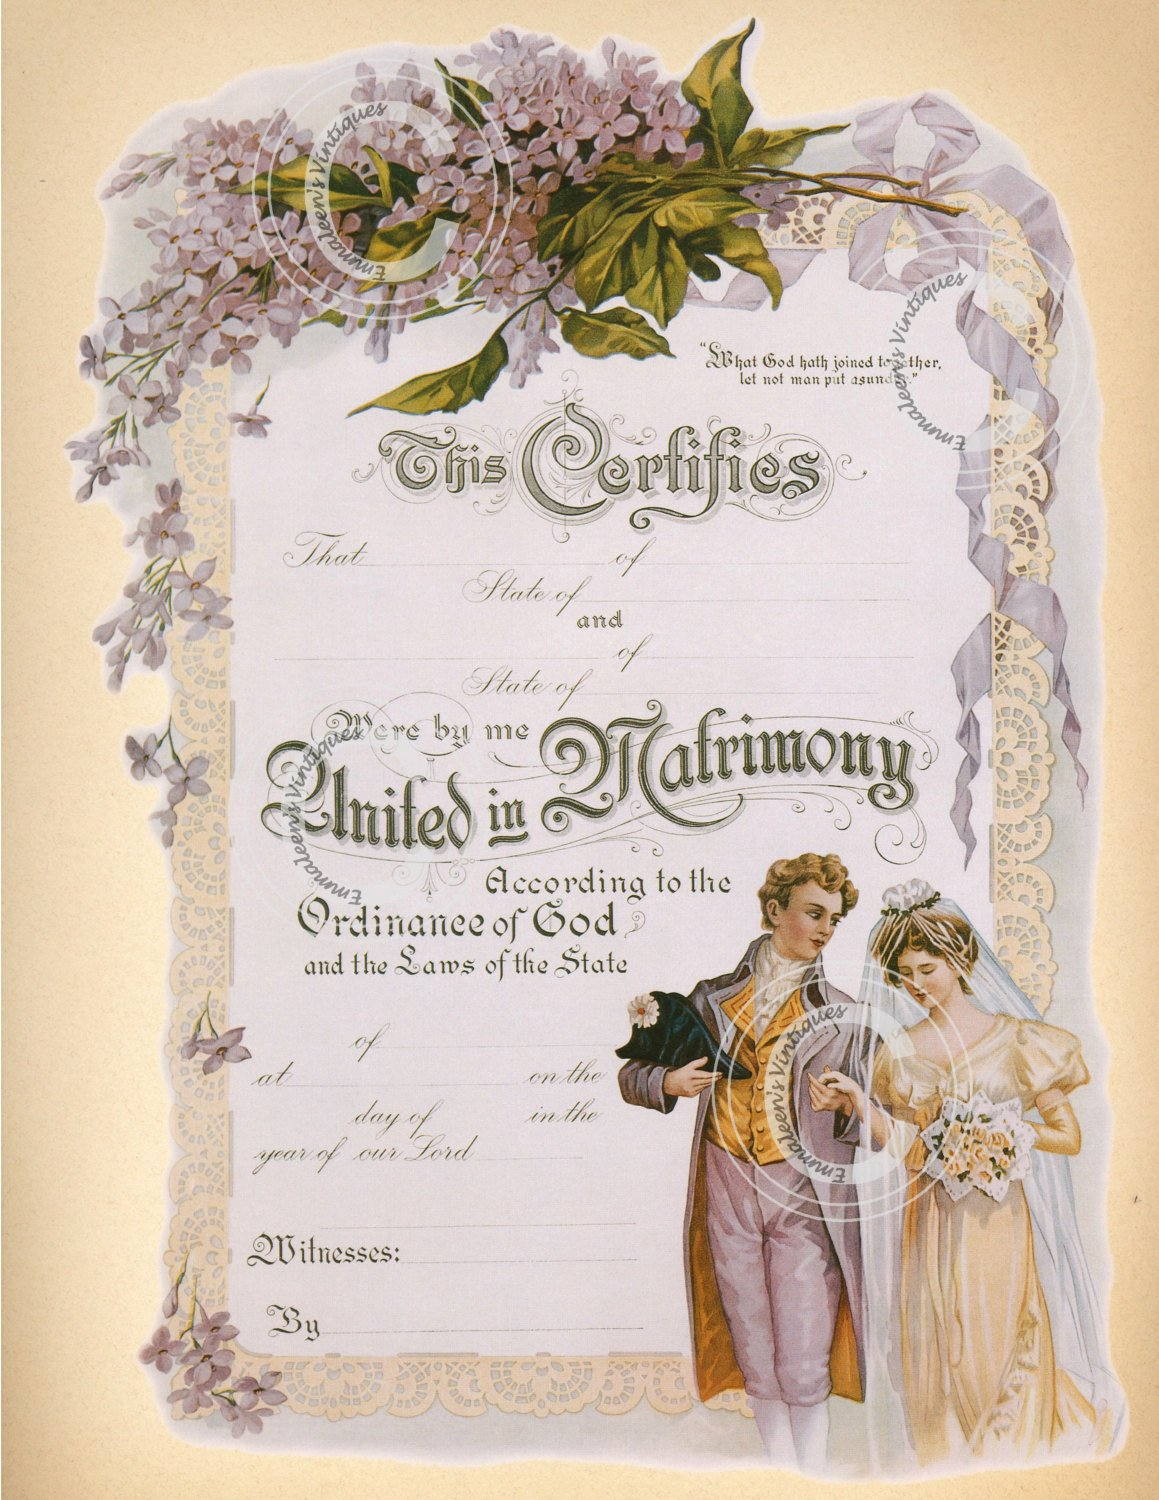 Free Marriage Certificate Download Best Of Vintage Marriage Certificate Digital Image by